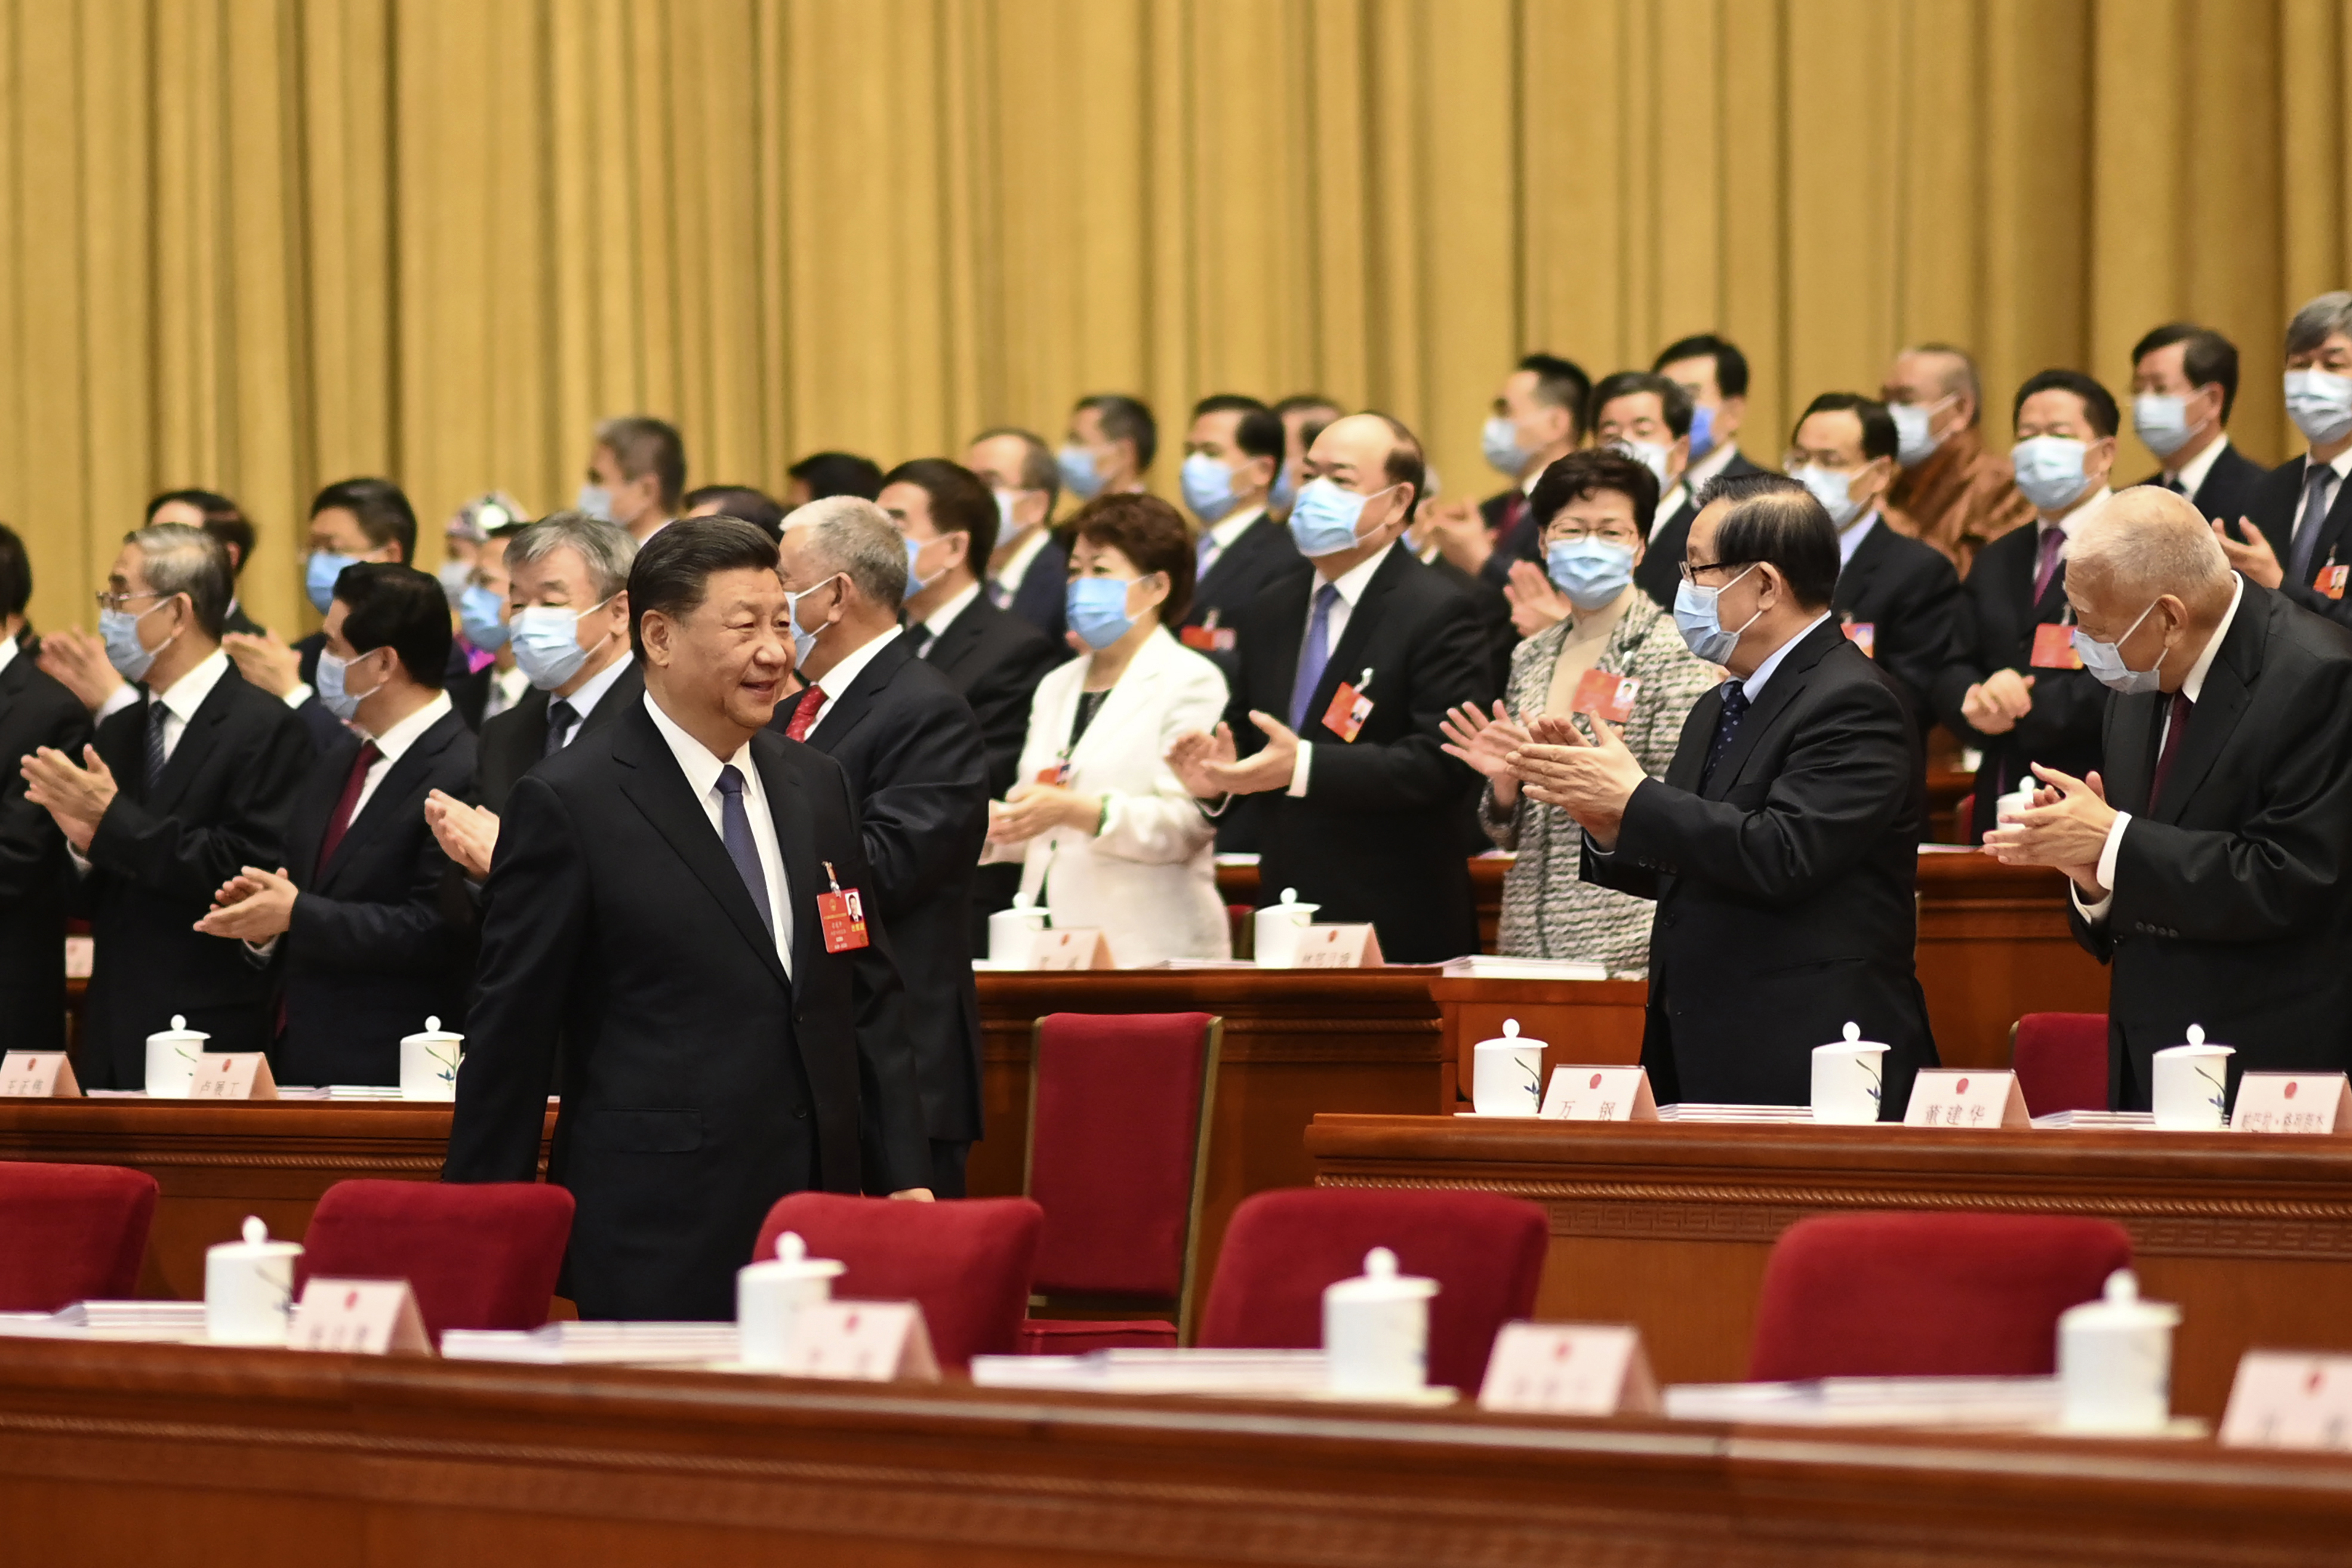 Chinese President Xi Jinping walks past ministers in  face masks during the opening session of the National People's Congress at the Great Hall of the People in Beijing on Friday.